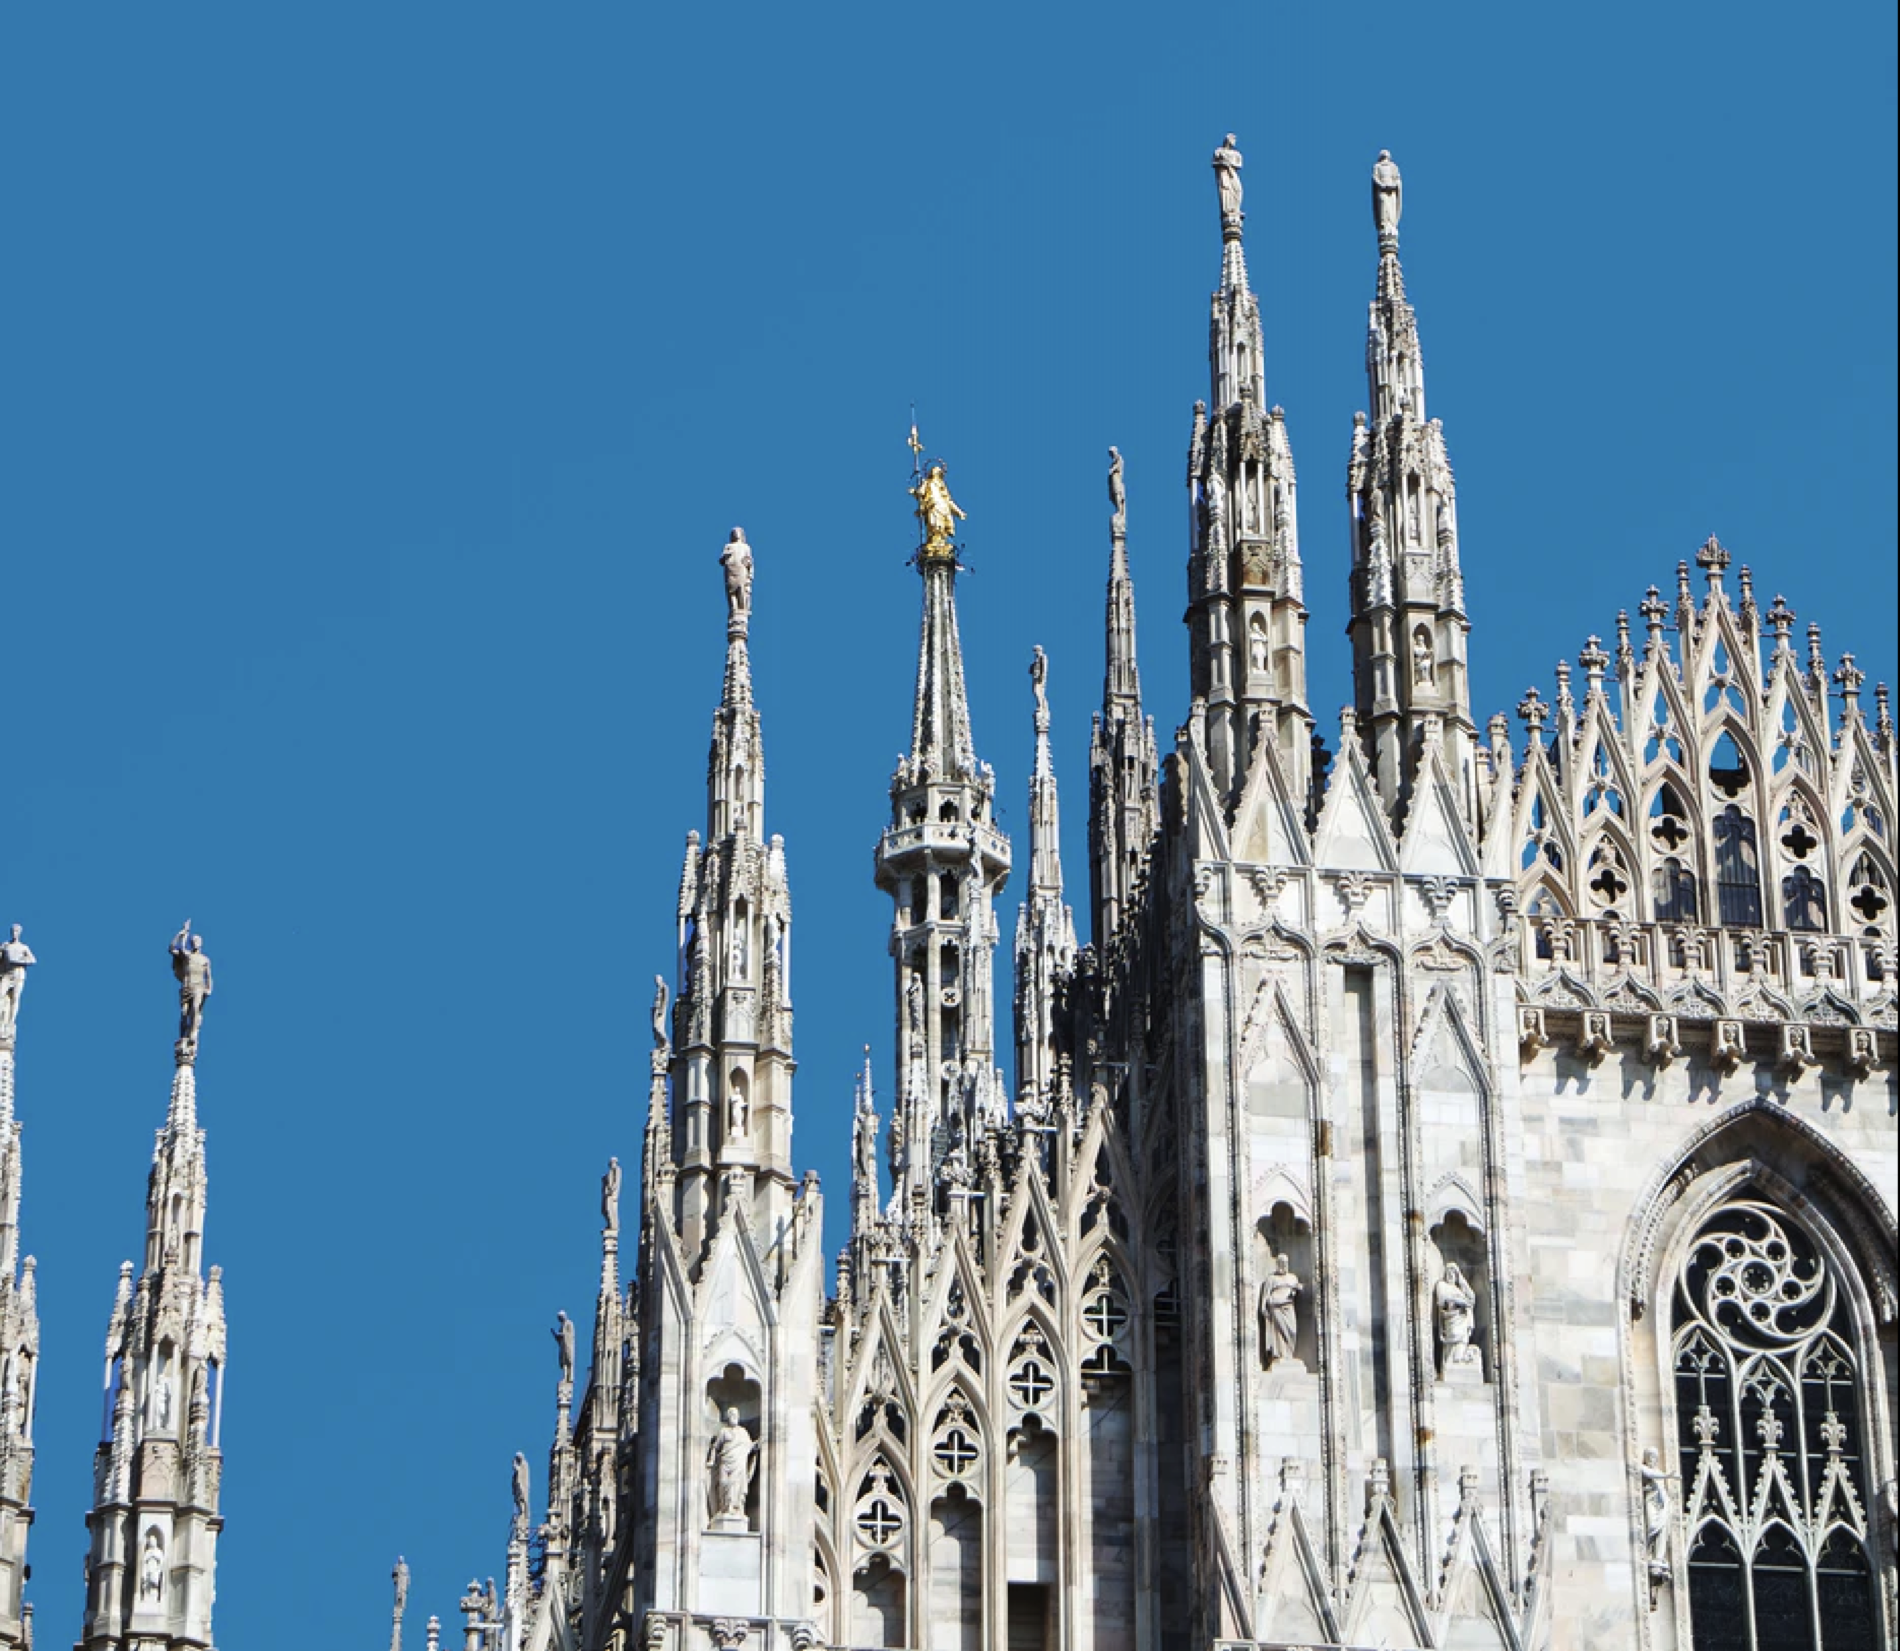 Discover the Luiss Business School at the Milano Luiss Hub